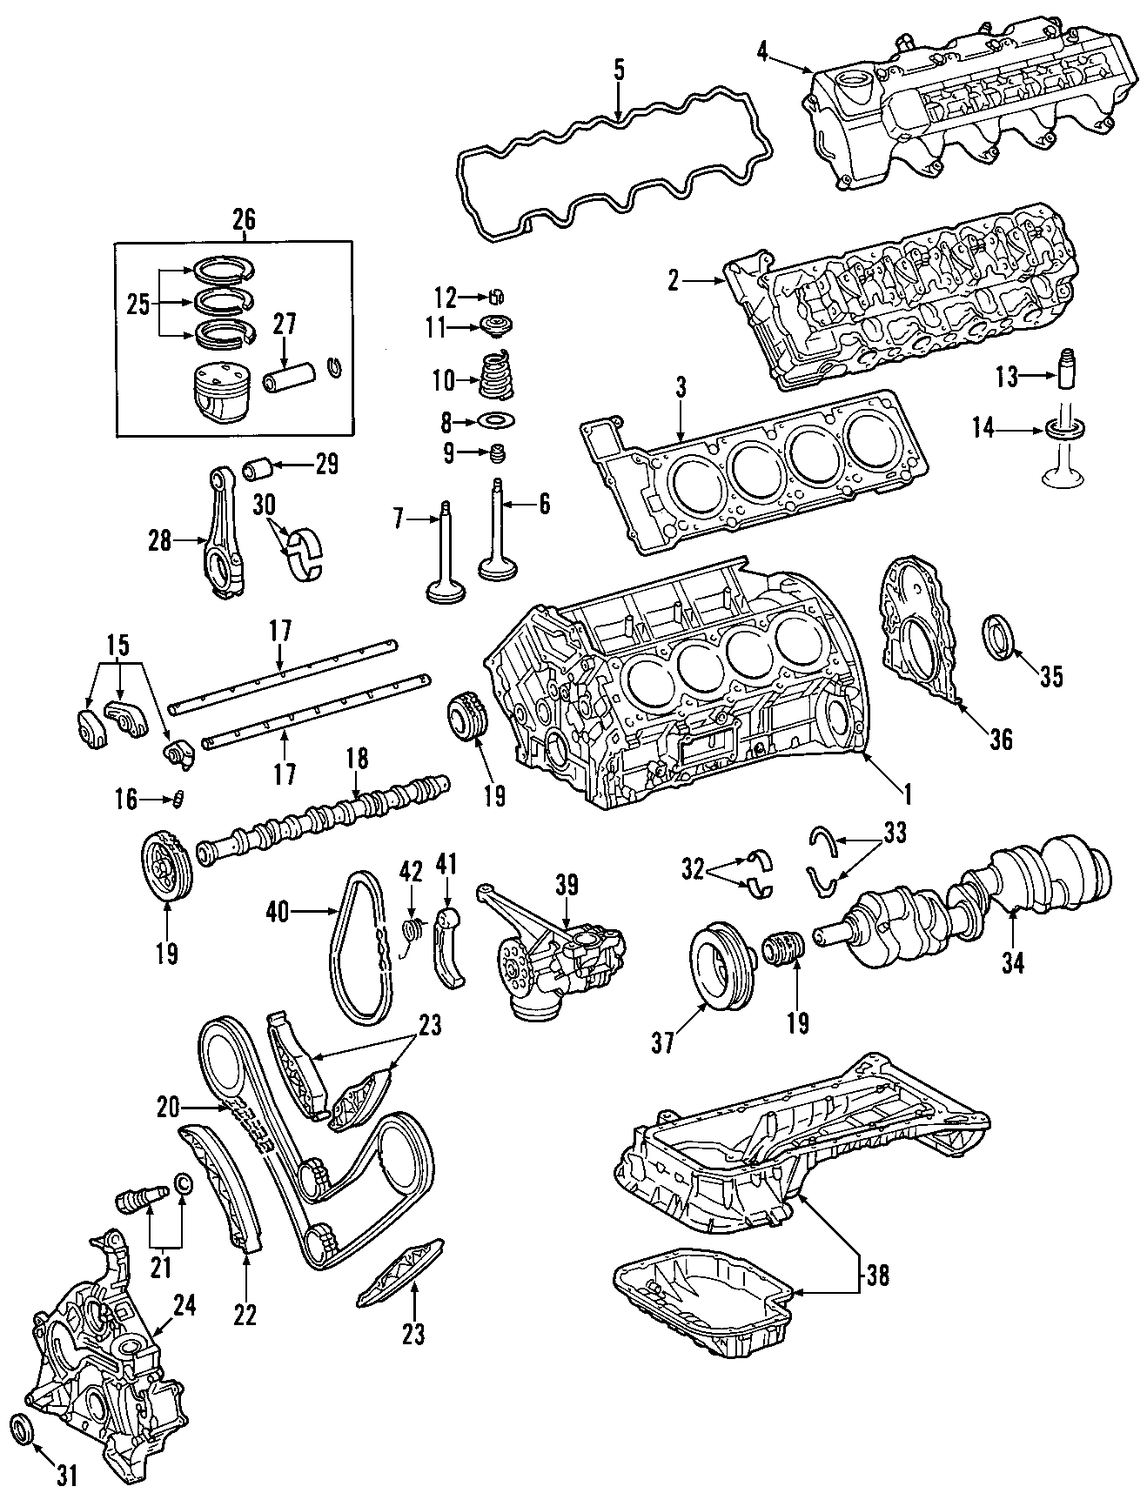 hight resolution of buy crankshaft and bearings parts for mercedes benz g55 amg vehicle mercedes benz sprinter parts diagram mercedes benz parts diagrams